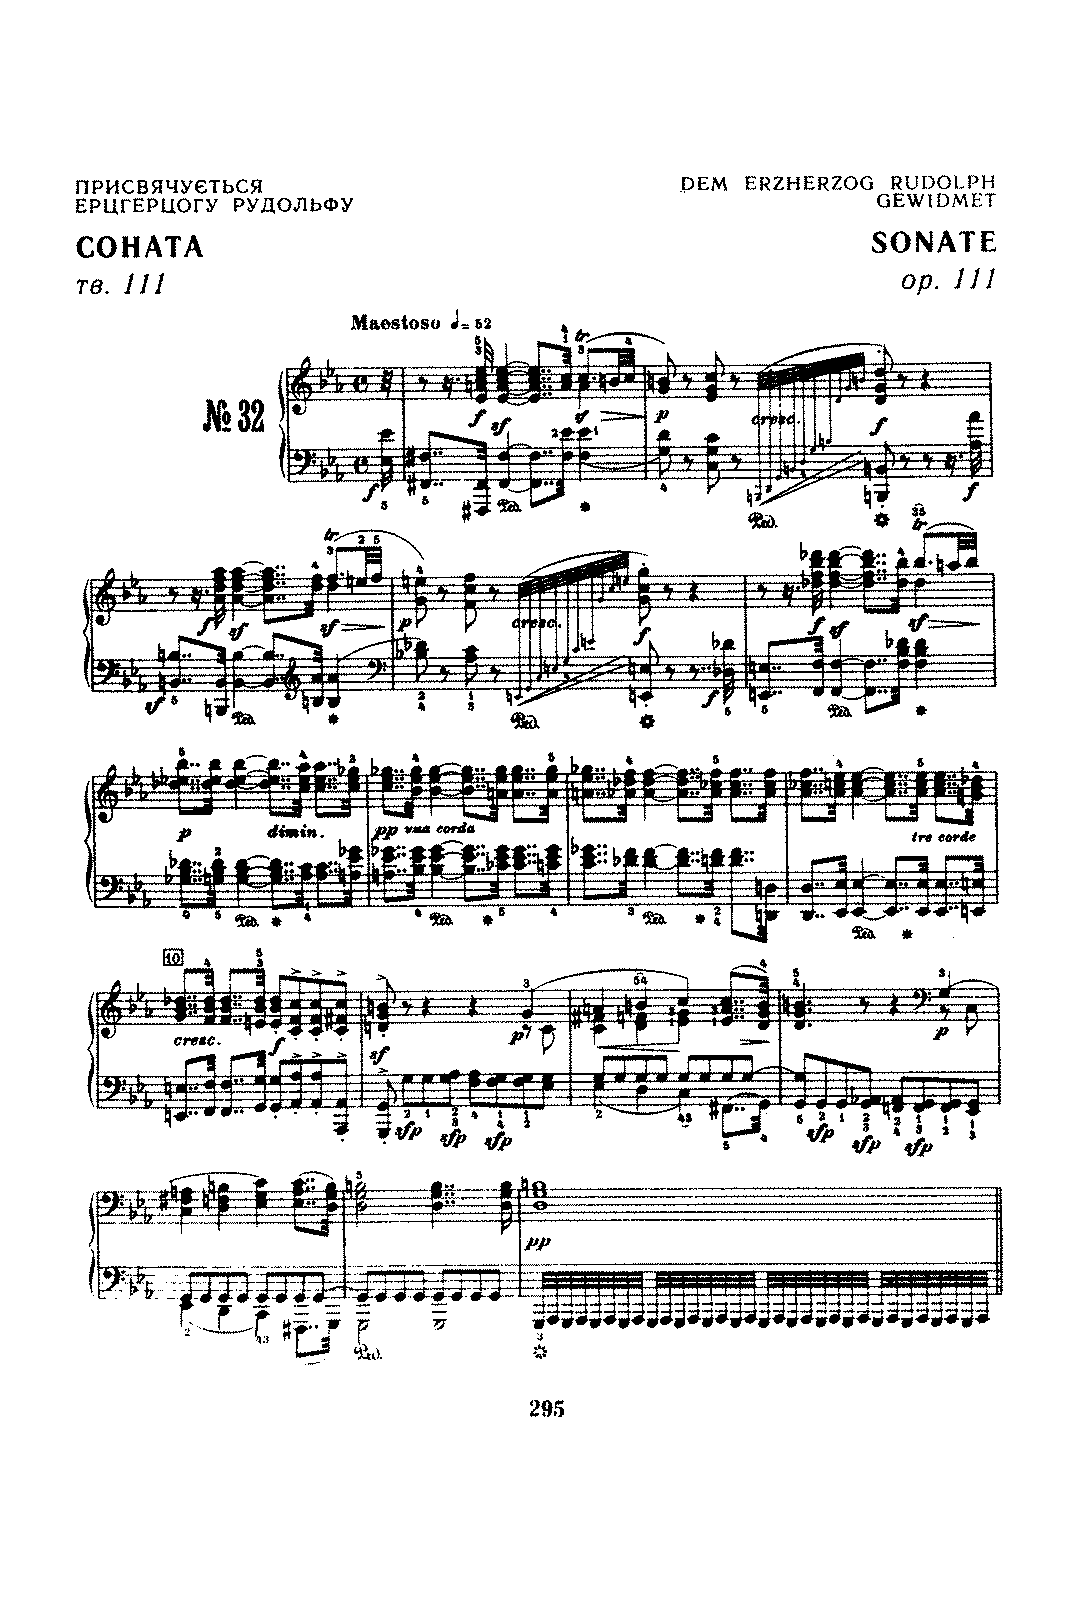 Beethoven - Piano Sonatas Lamond - 32 part1.pdf